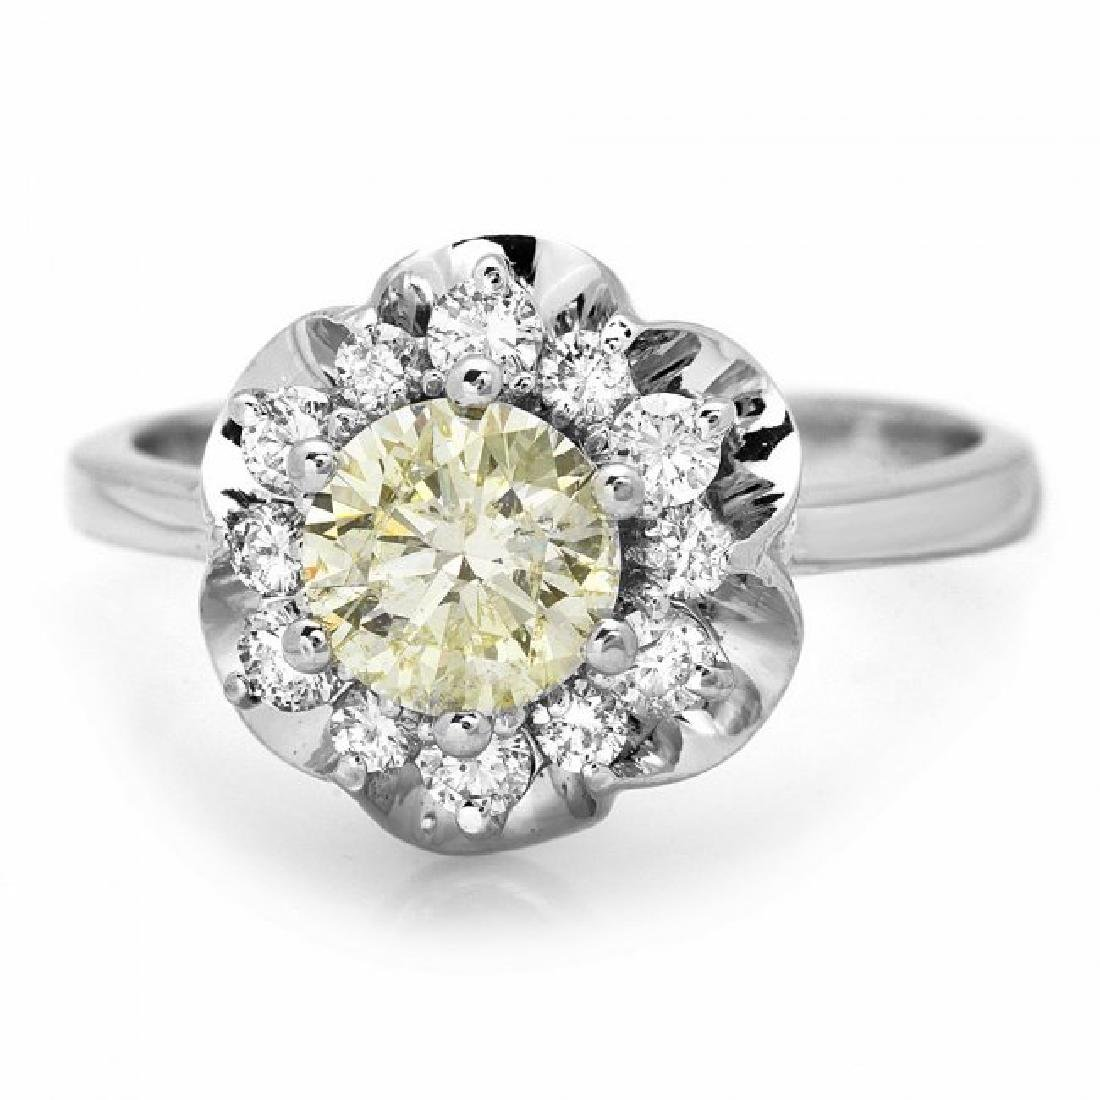 14k White Gold 1.3ct Diamond Ring - 2